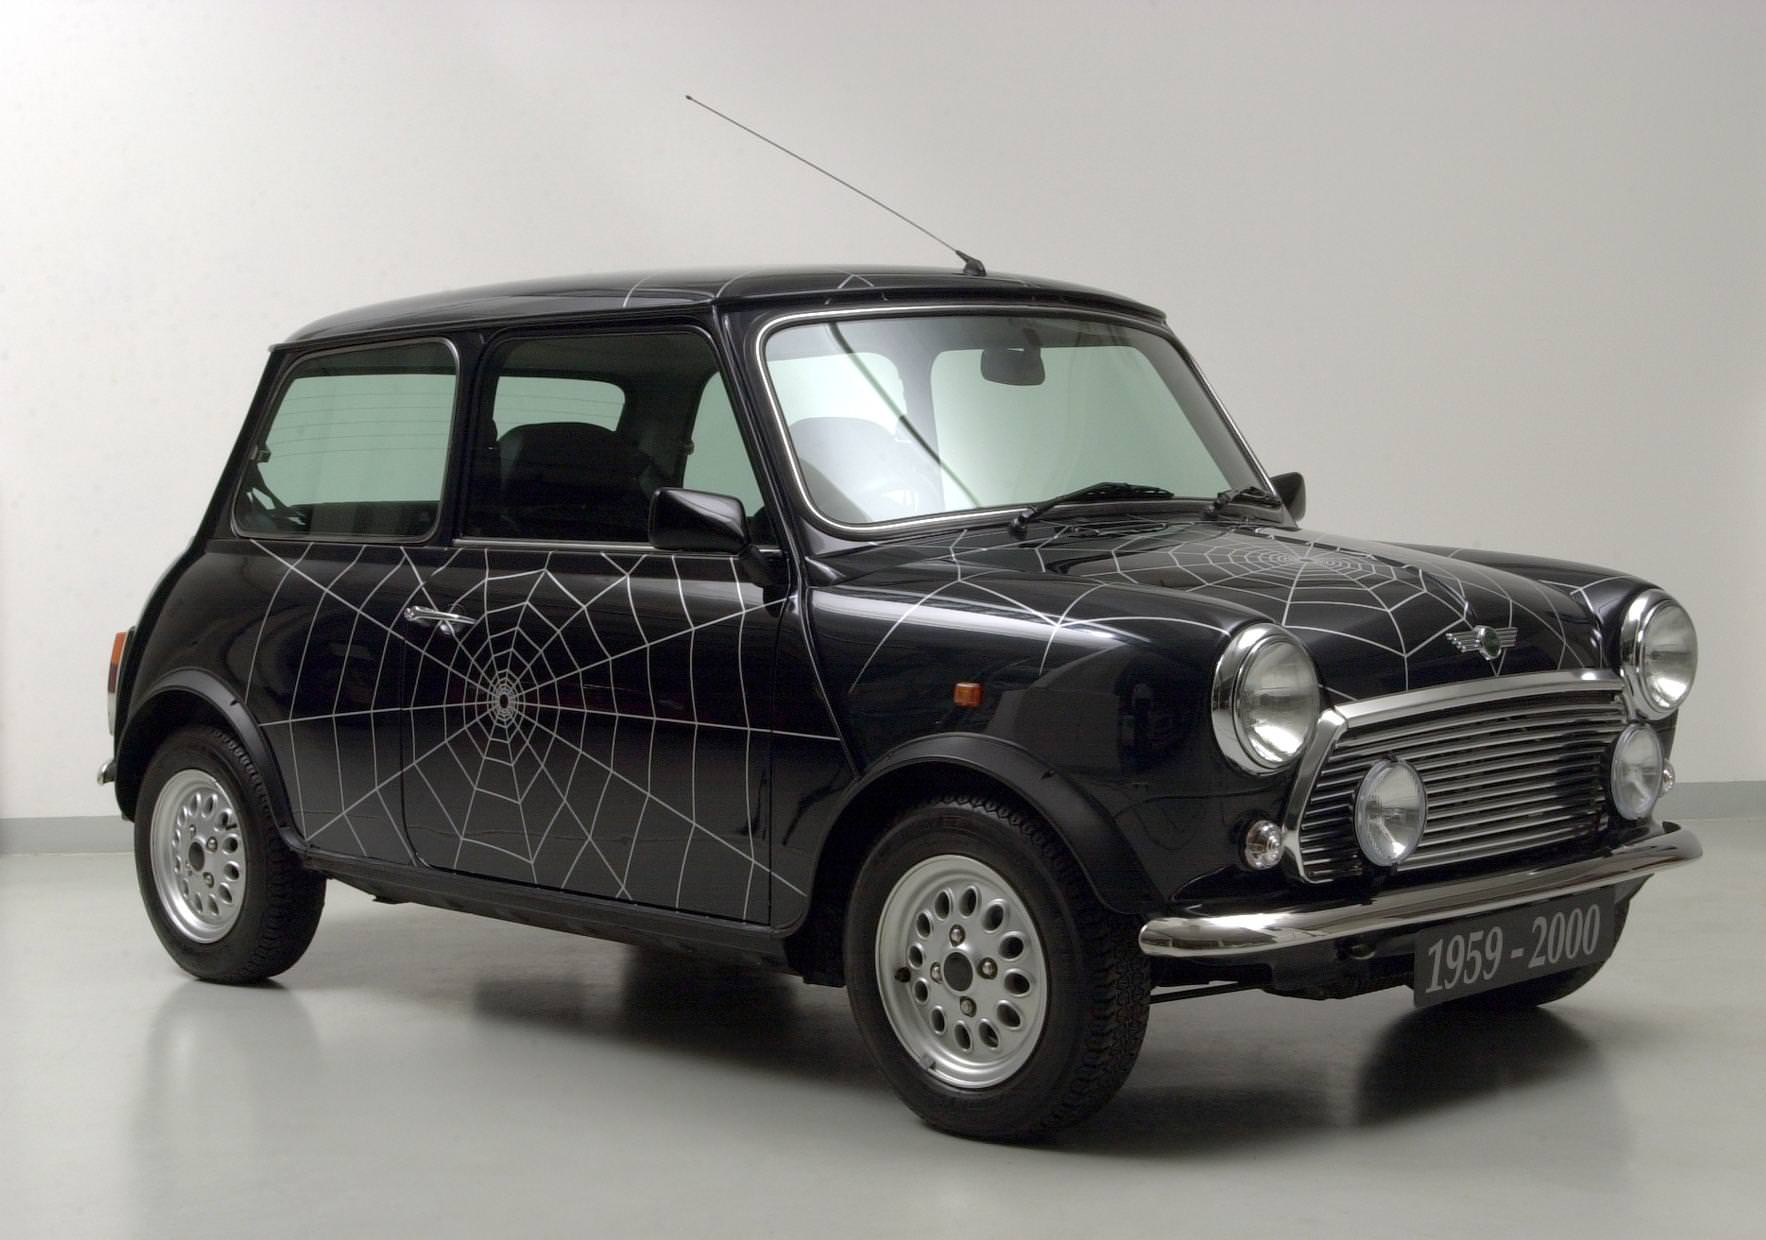 image of a black vintage mini cooper car exterior with spider web design